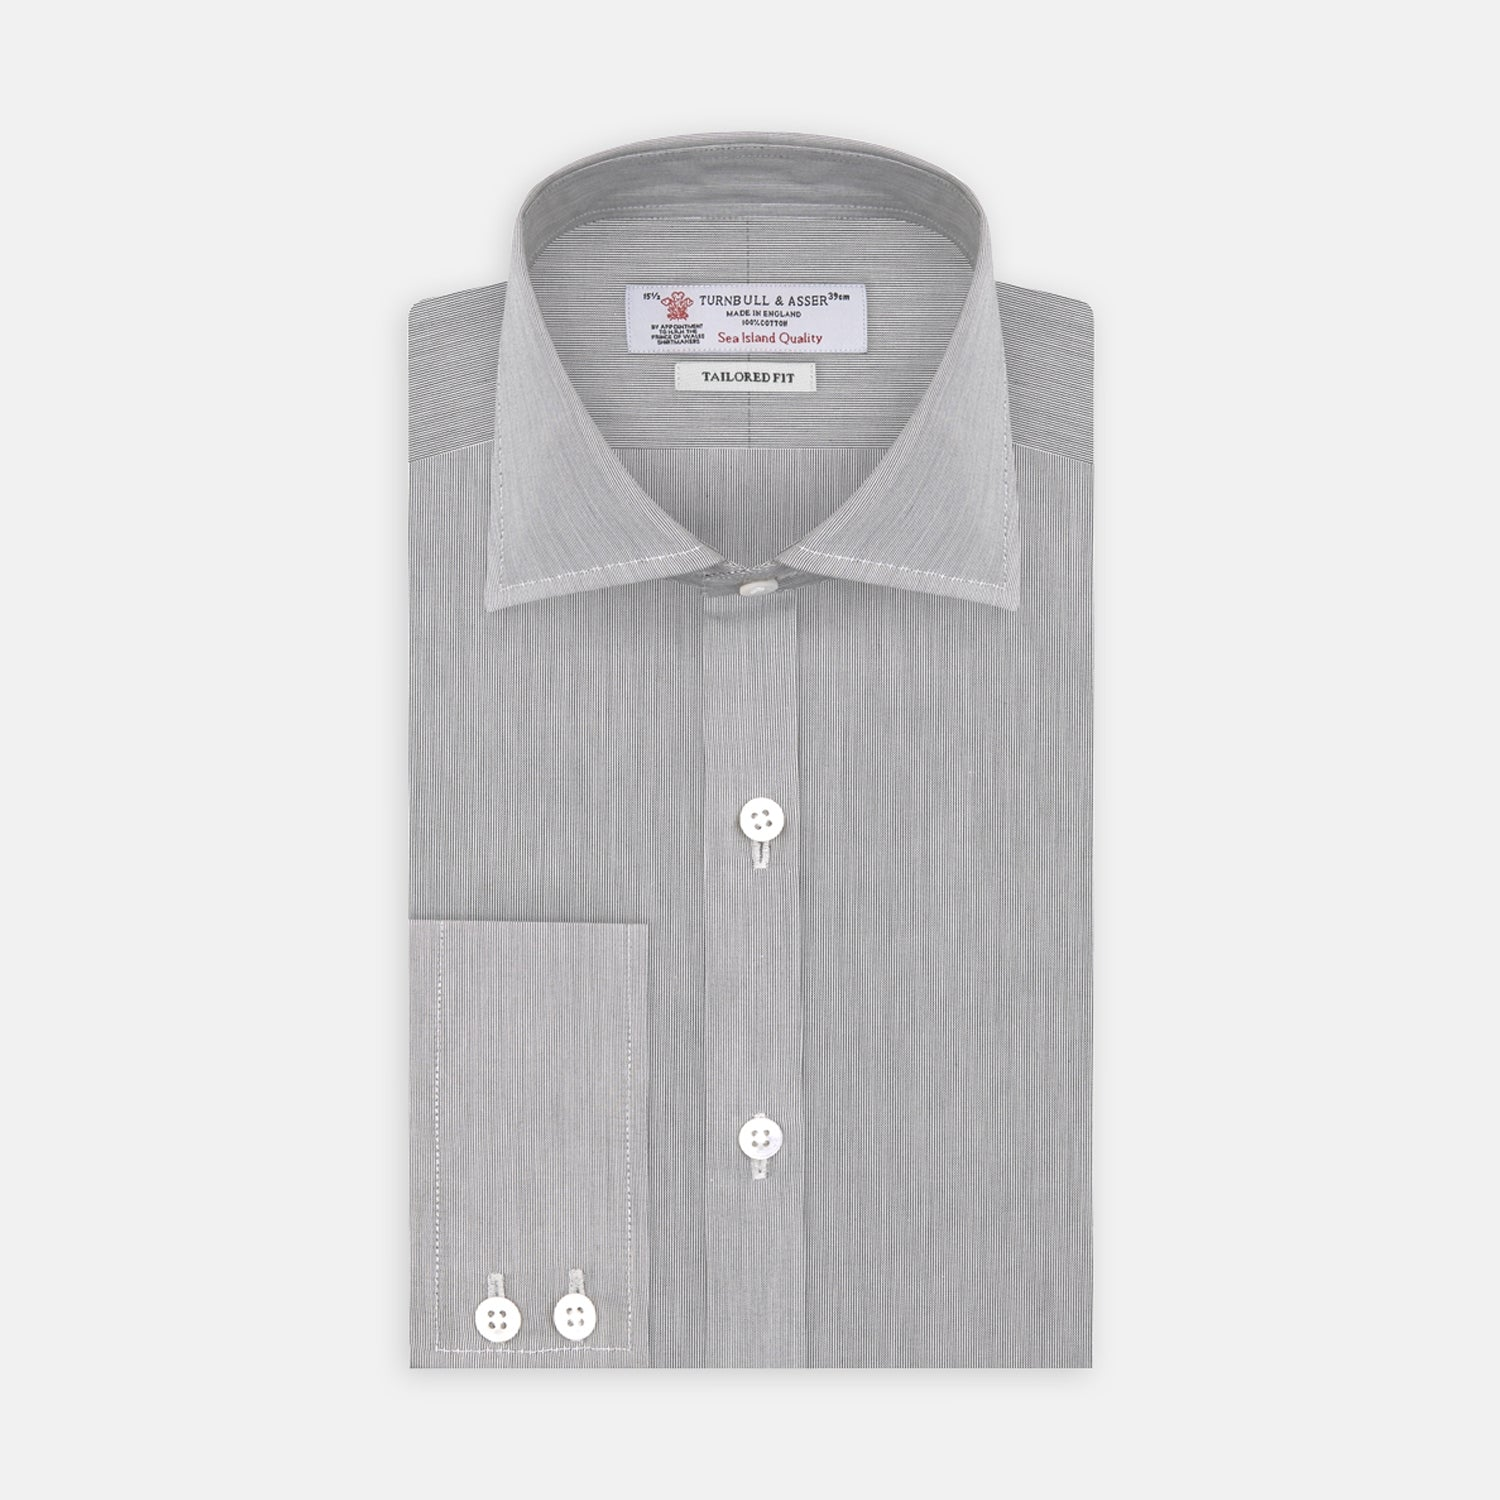 Tailored Fit Grey End-On-End Shirt with Kent Collar and 2-Button Cuffs - 18.0 from Turnbull & Asser